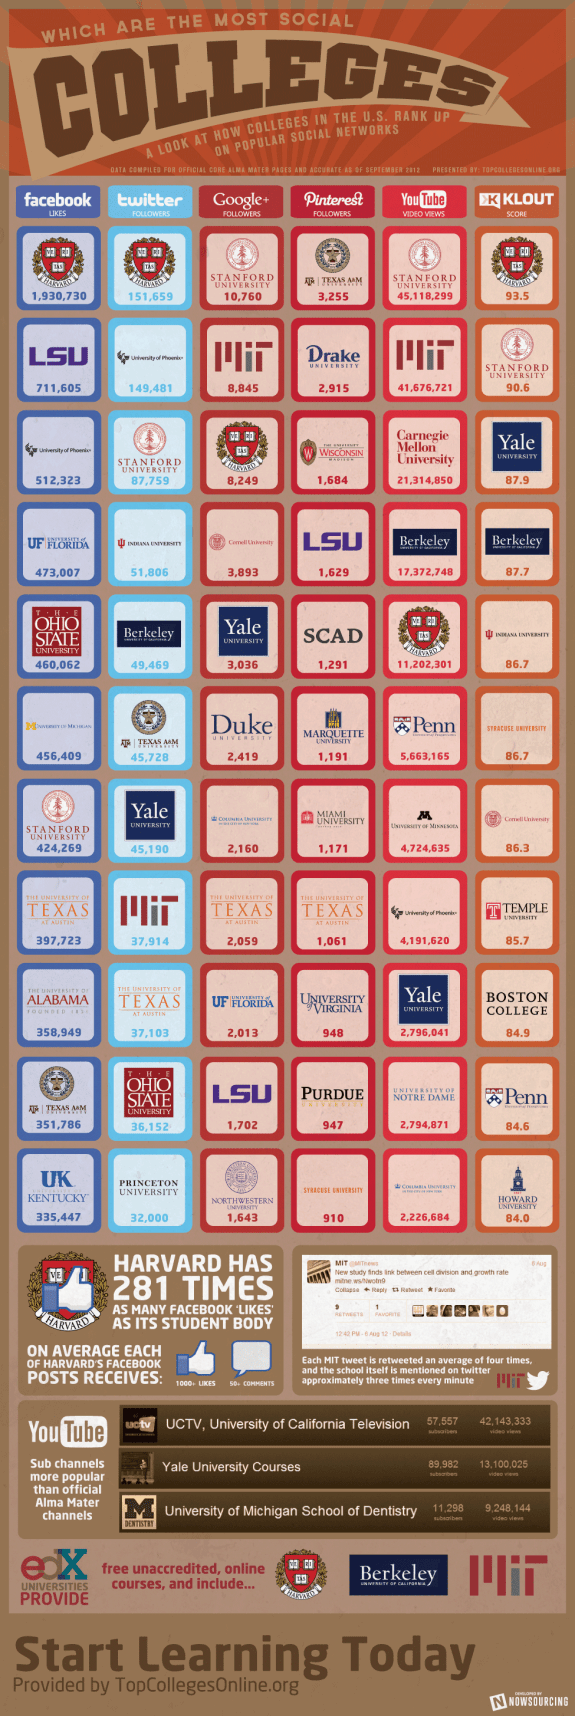 The Most Social Colleges [Infographic] 1